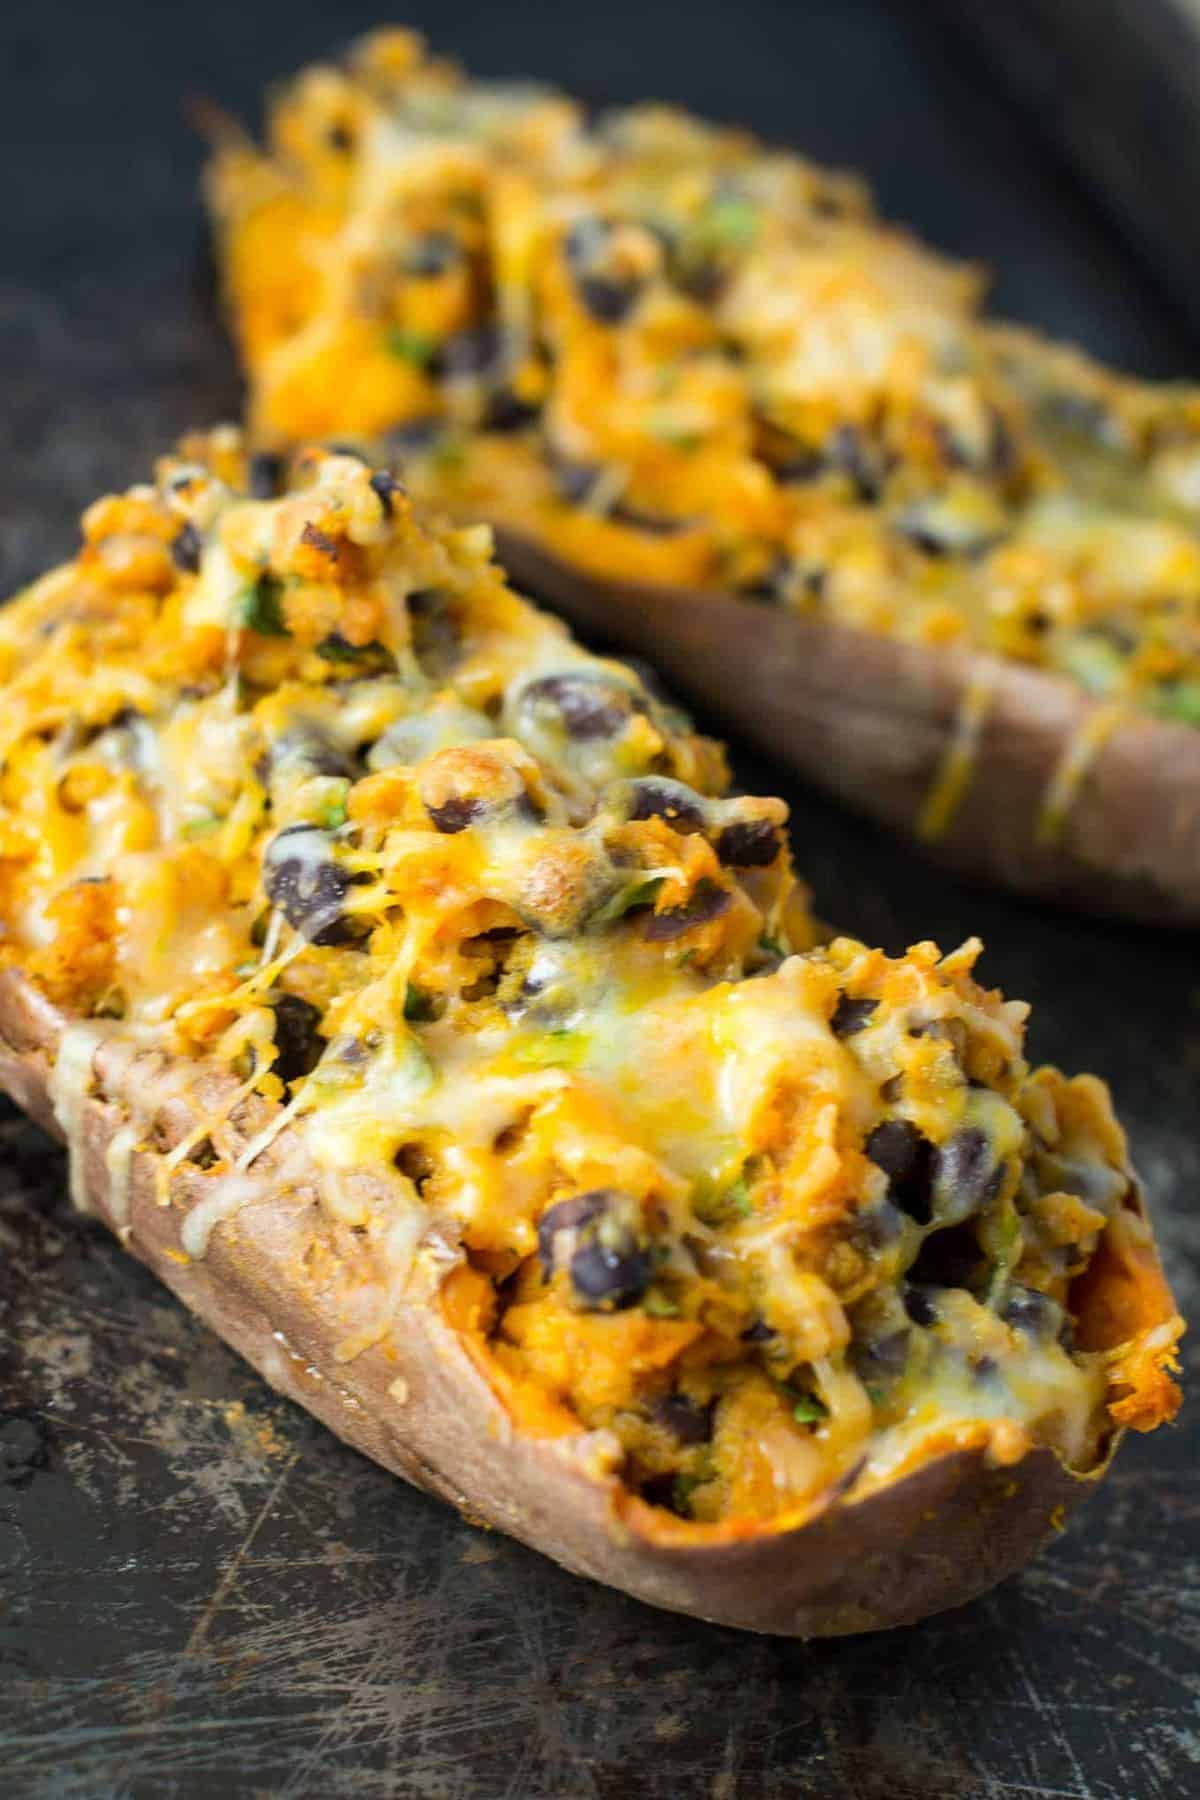 vegetarian mexican stuffed sweet potatoes recipe via @buildyourbite